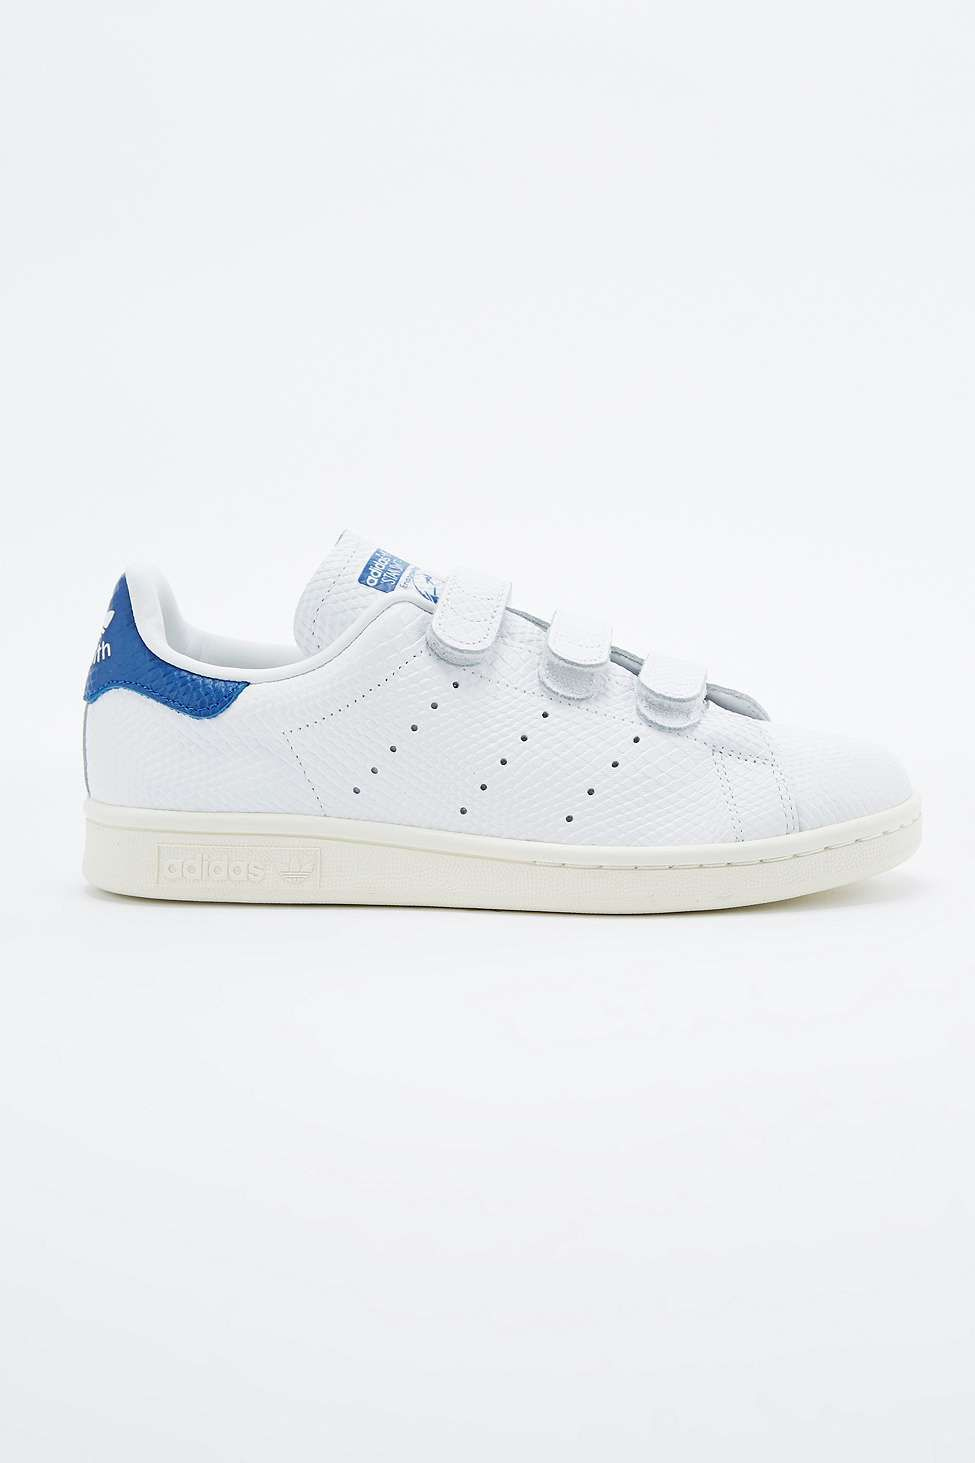 6ac237326841 adidas Originals Stan Smith White   Blue Velcro Trainers